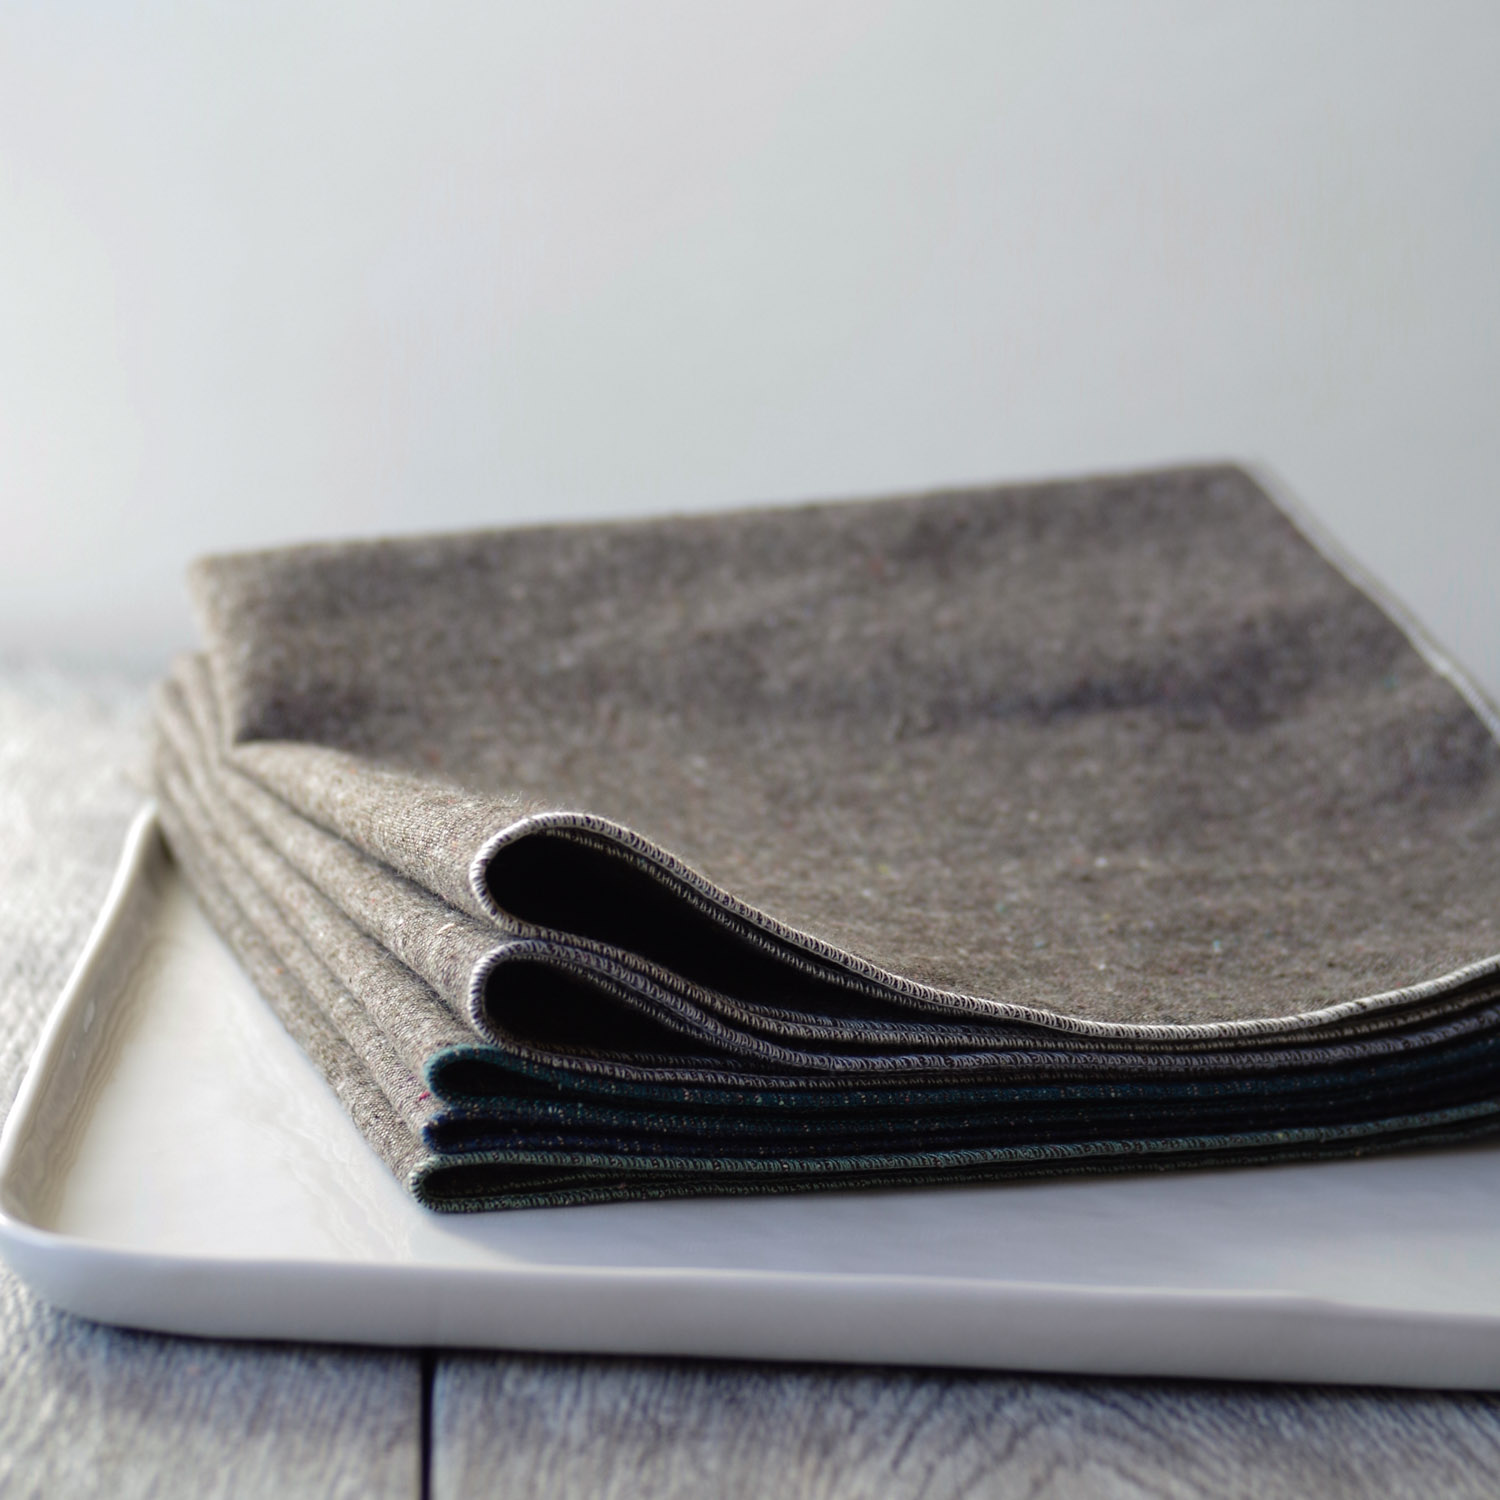 Beautiful Ingredient Handmade napkins in Granite, ideal for the holidays!